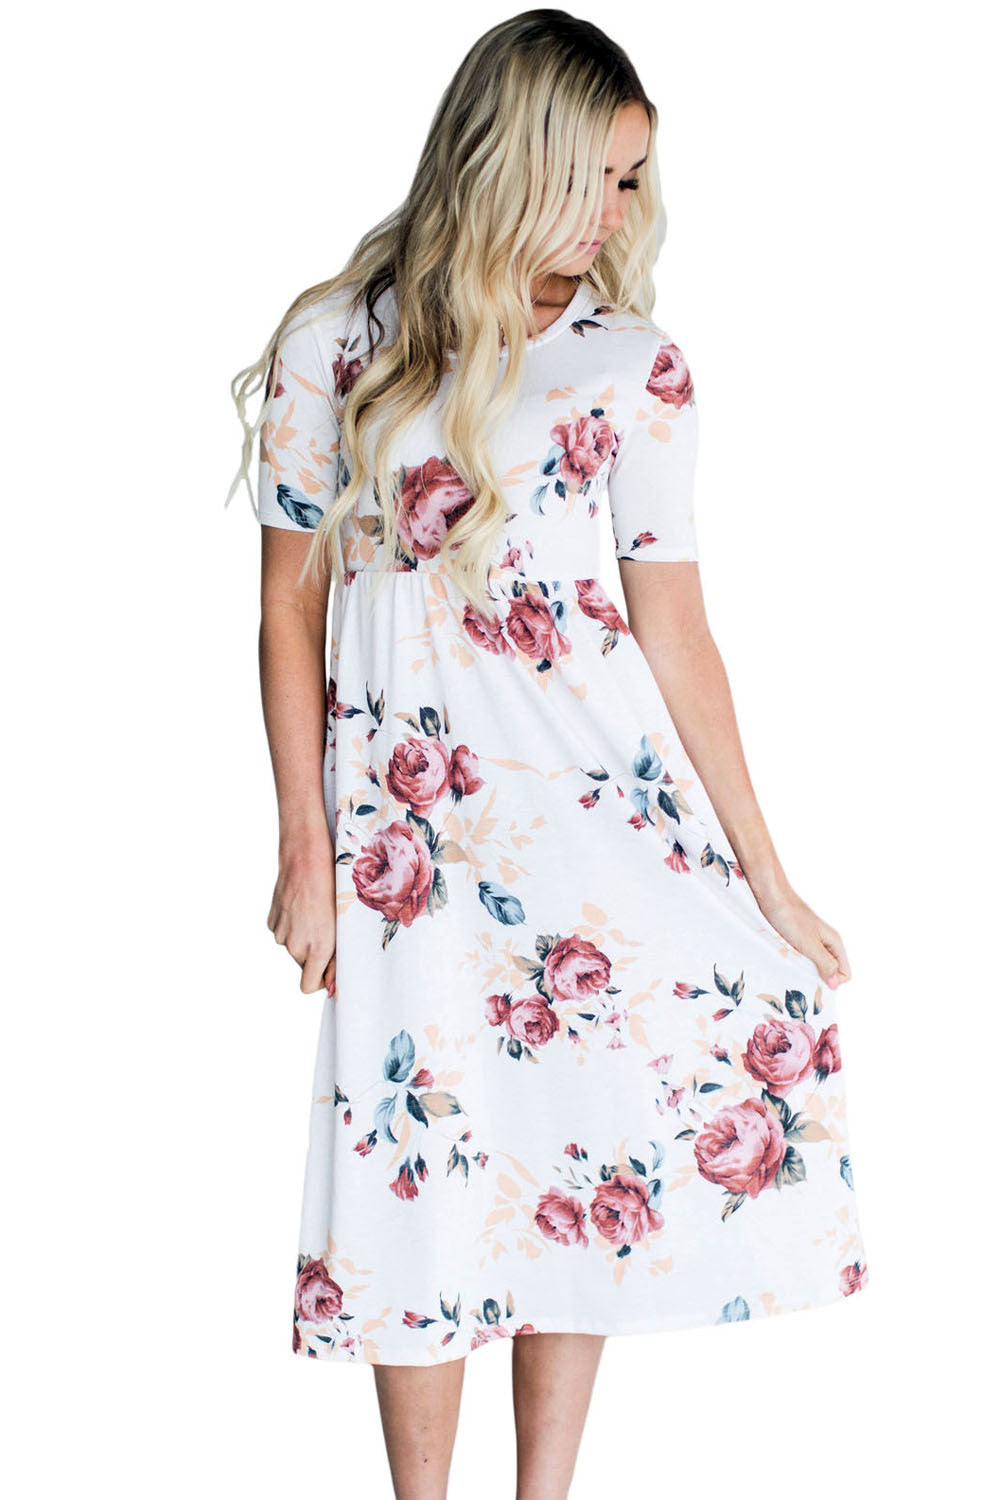 Casual Pocket Design White Floral Dress LAVELIQ